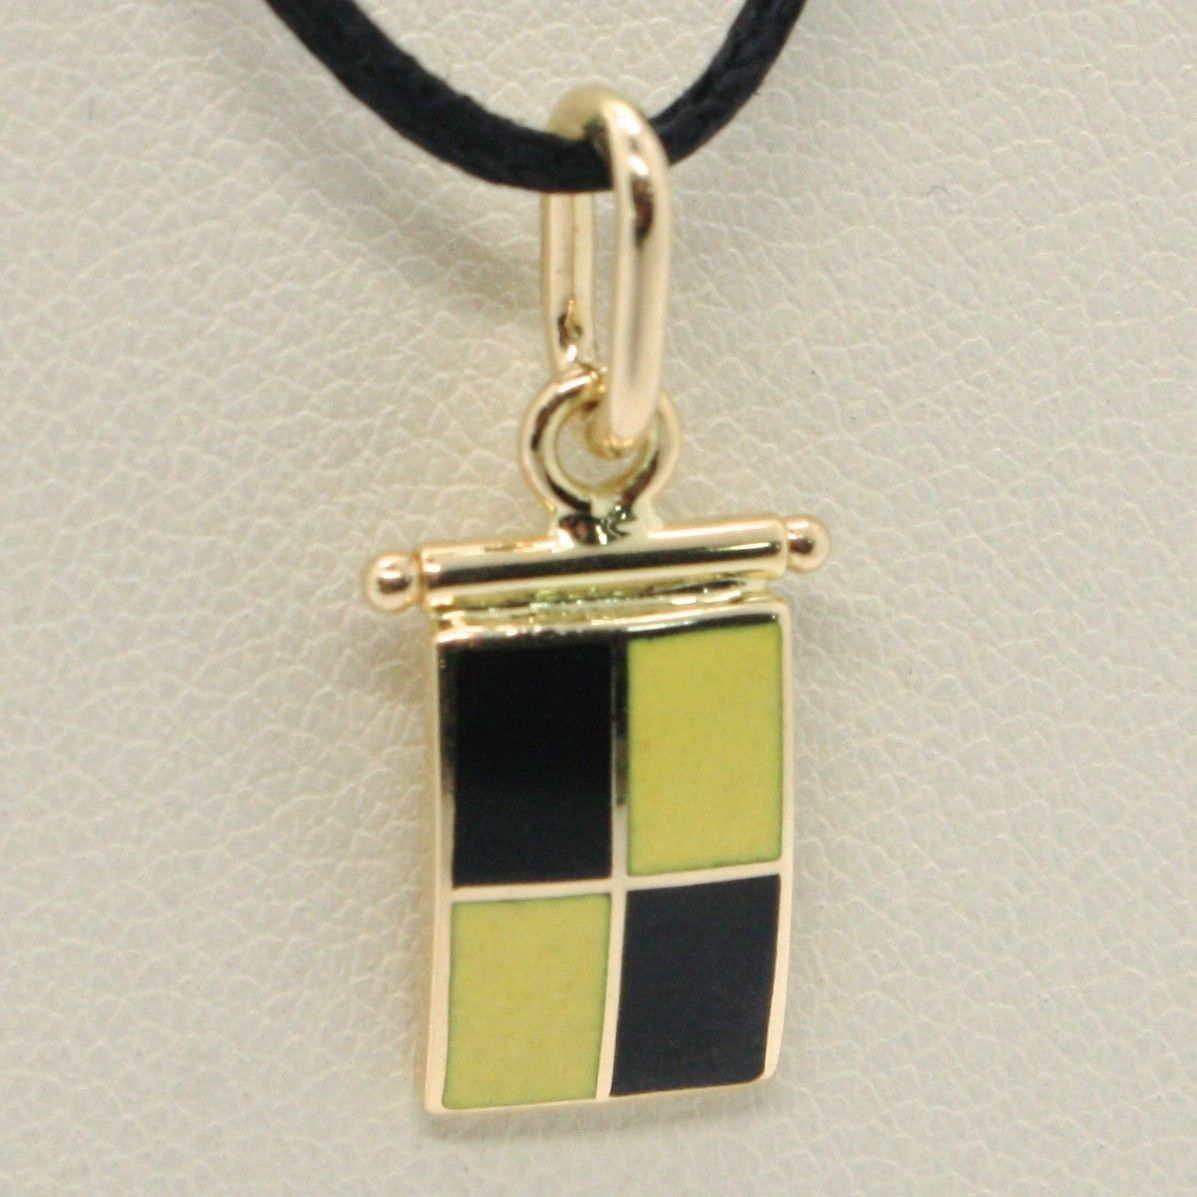 18K YELLOW GOLD NAUTICAL GLAZED FLAG LETTER L PENDANT CHARM MEDAL MADE IN ITALY